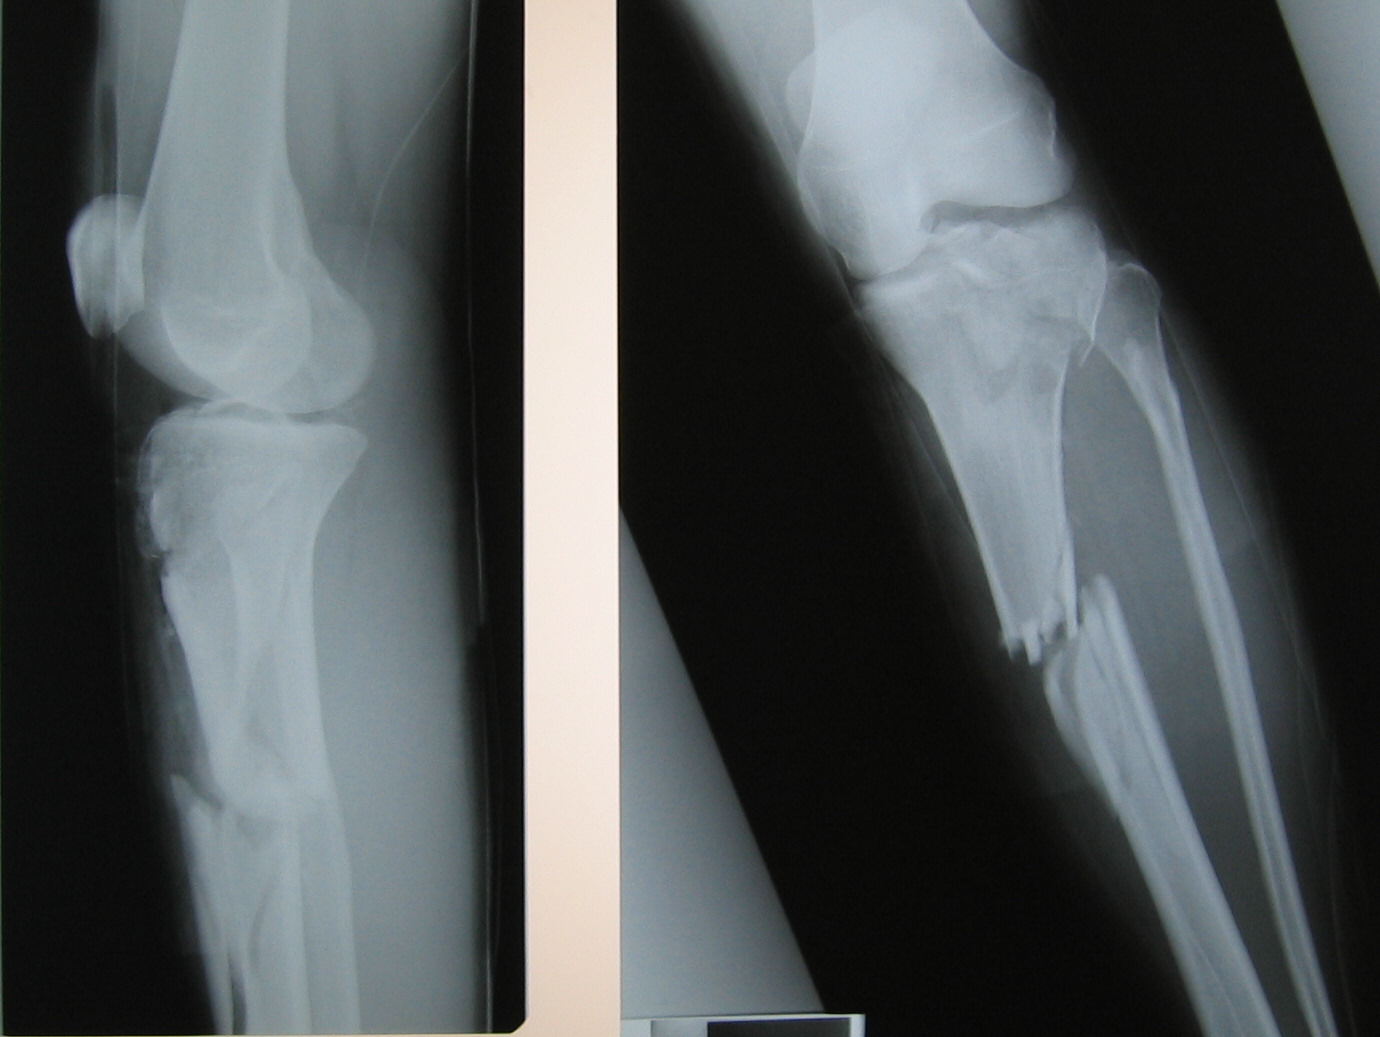 fracture with right tibial plateau osteotomy fracture of tibial